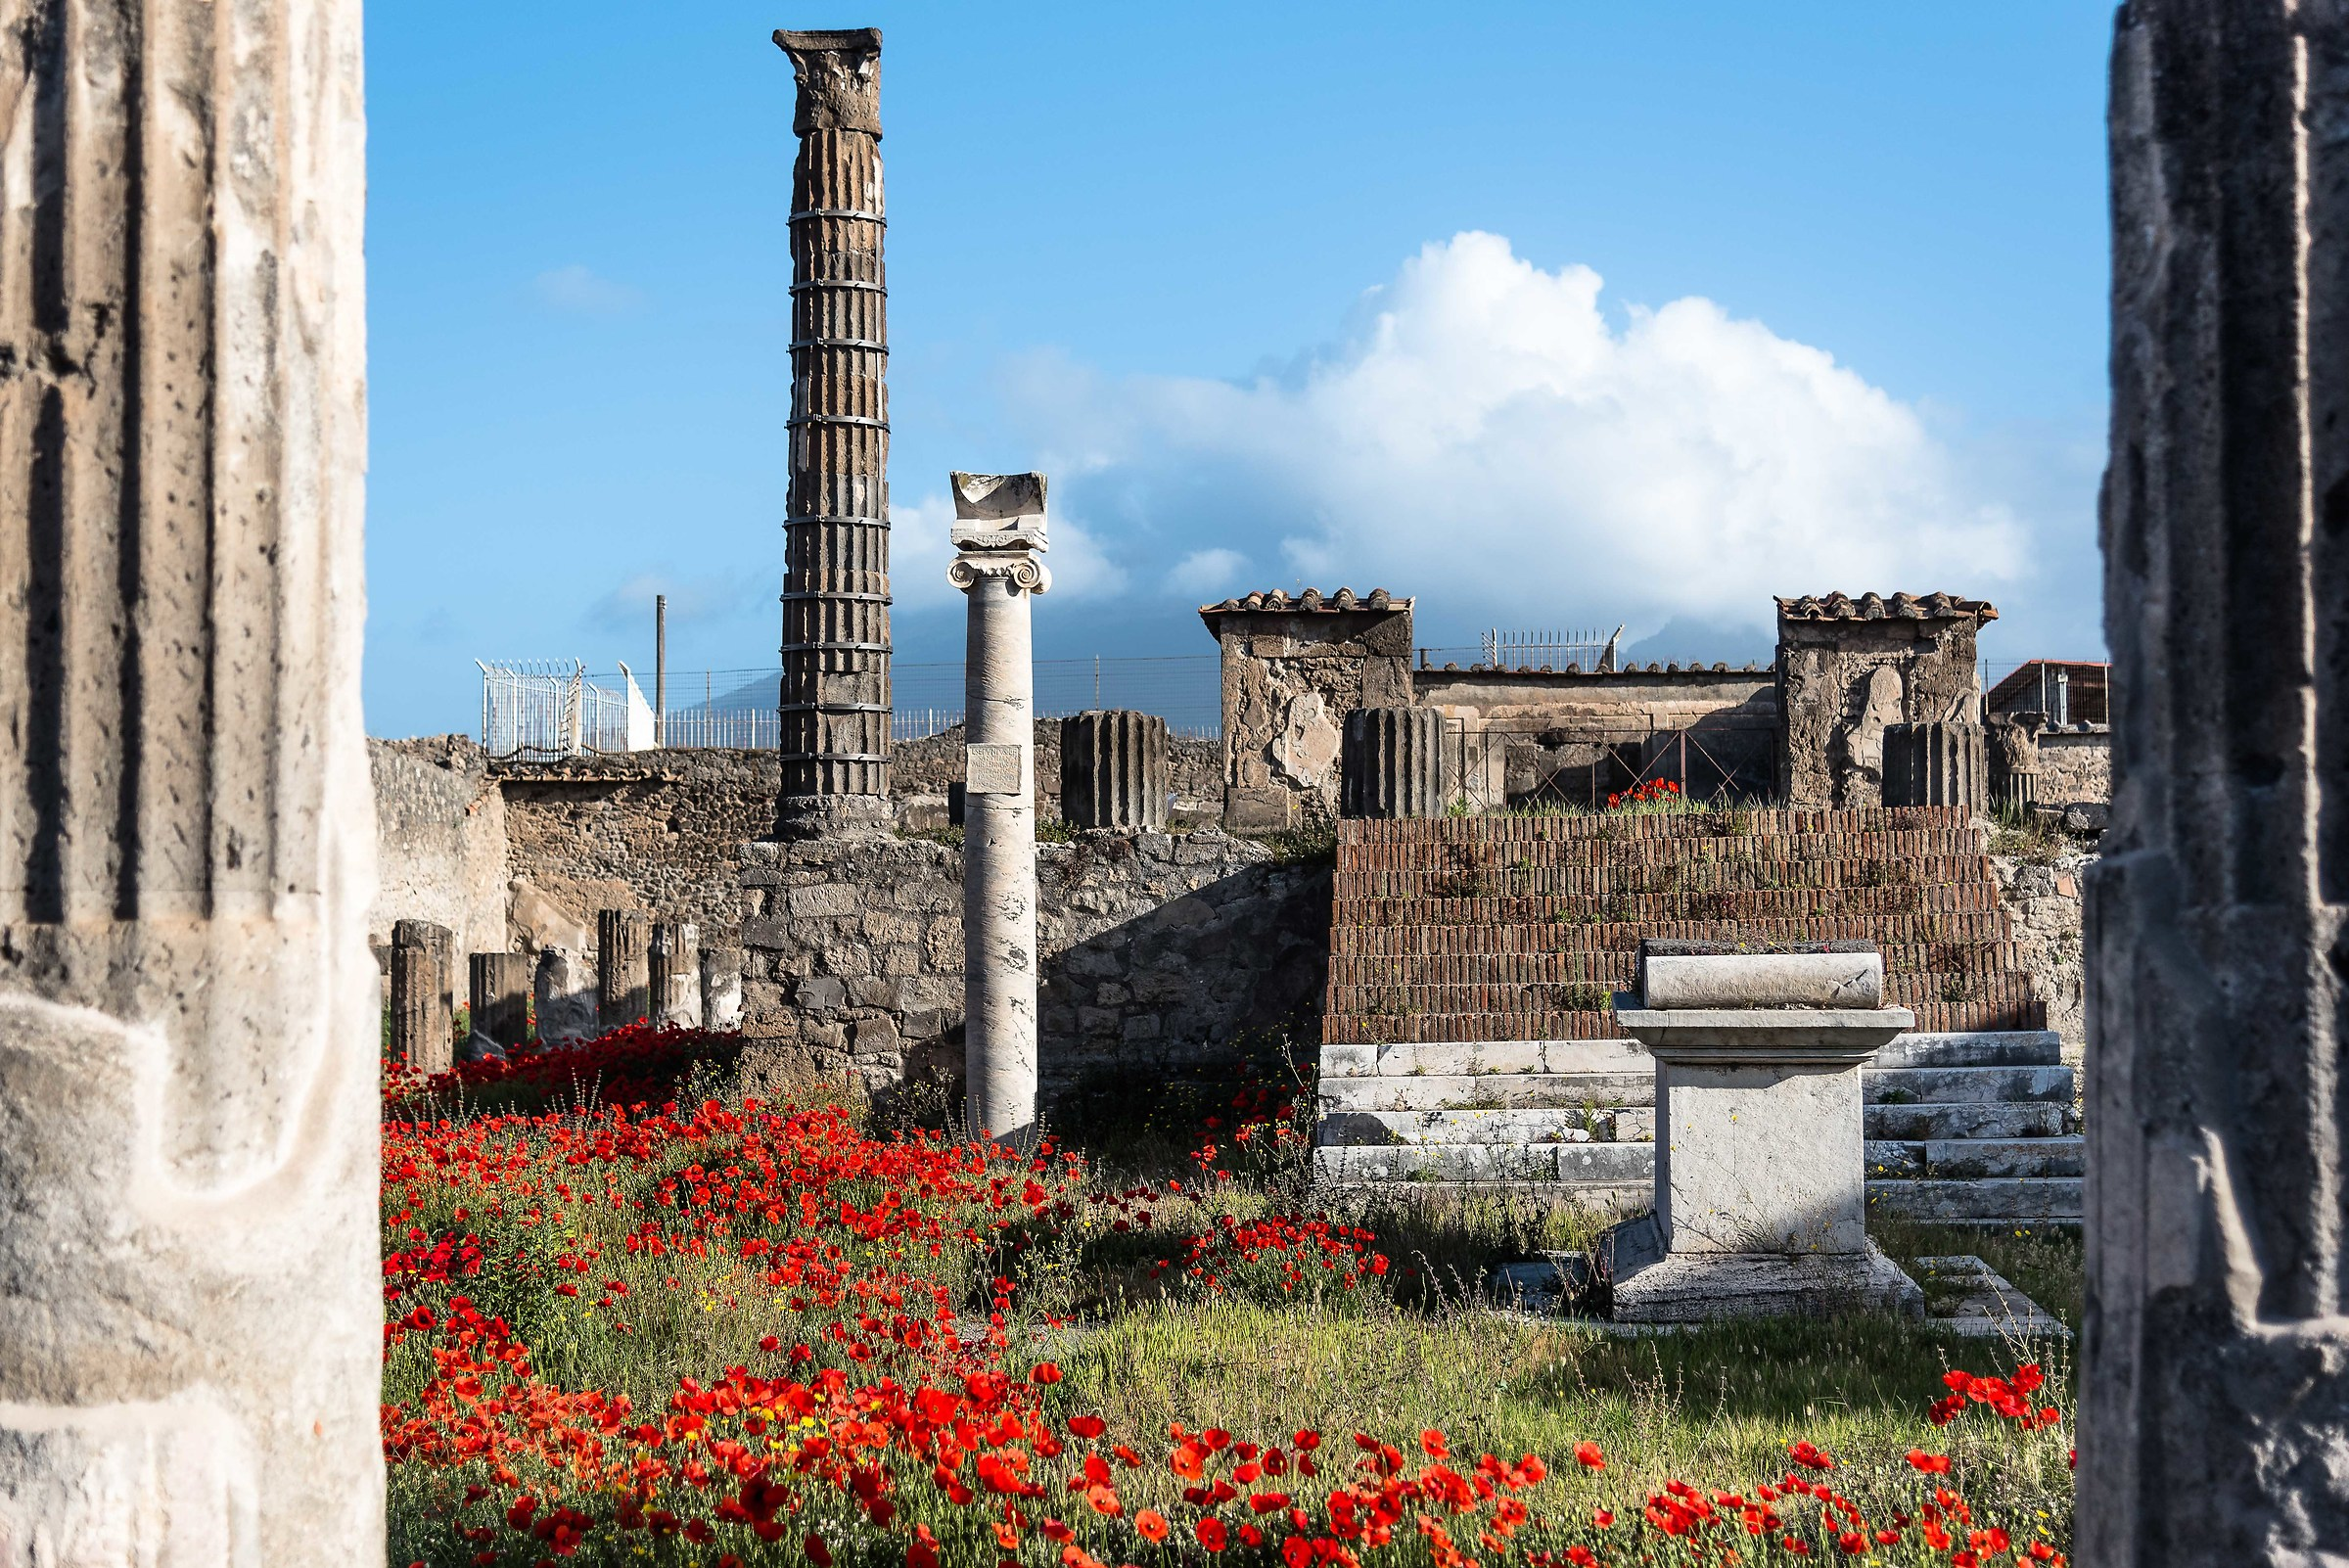 Excavations and poppies...